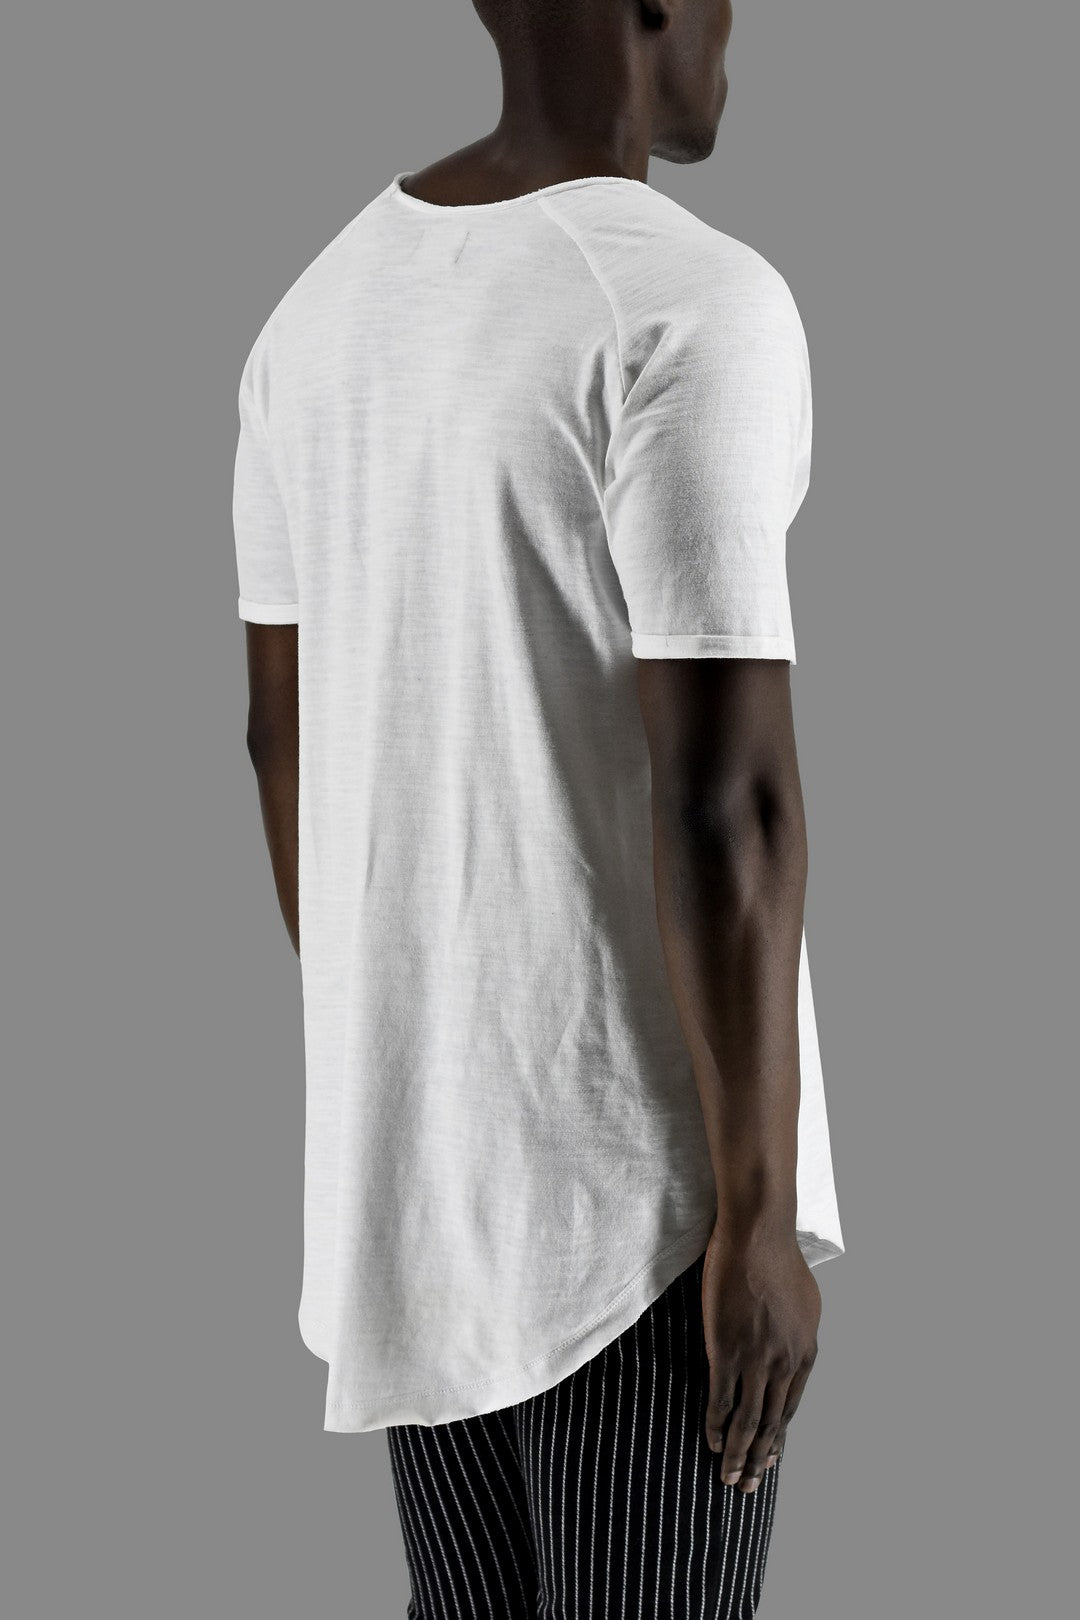 ZG5015 neck detail T shirt